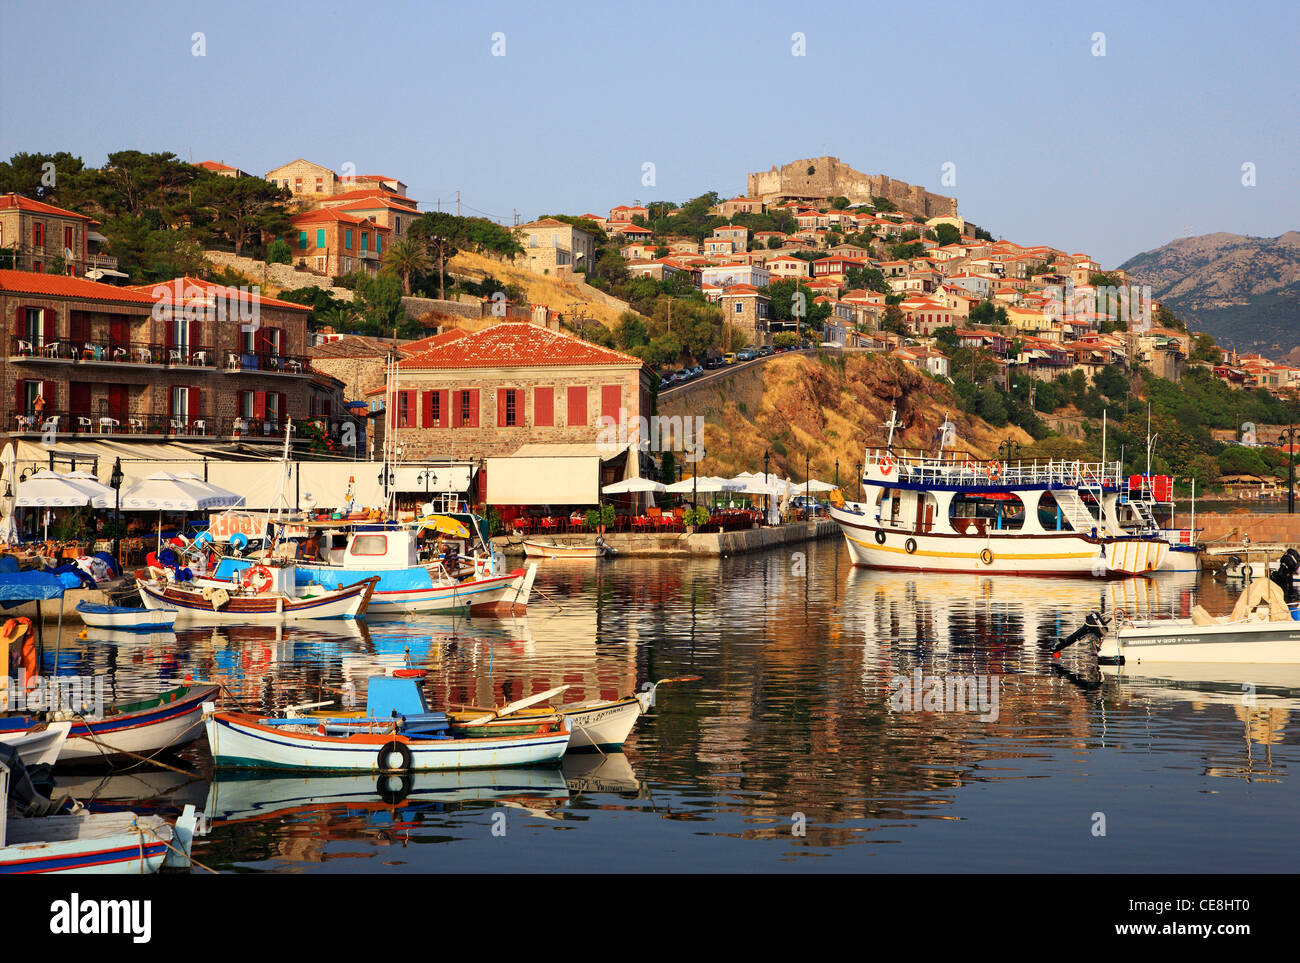 Molyvos town in Lesvos island, northern Aegean, Greece - Stock Image